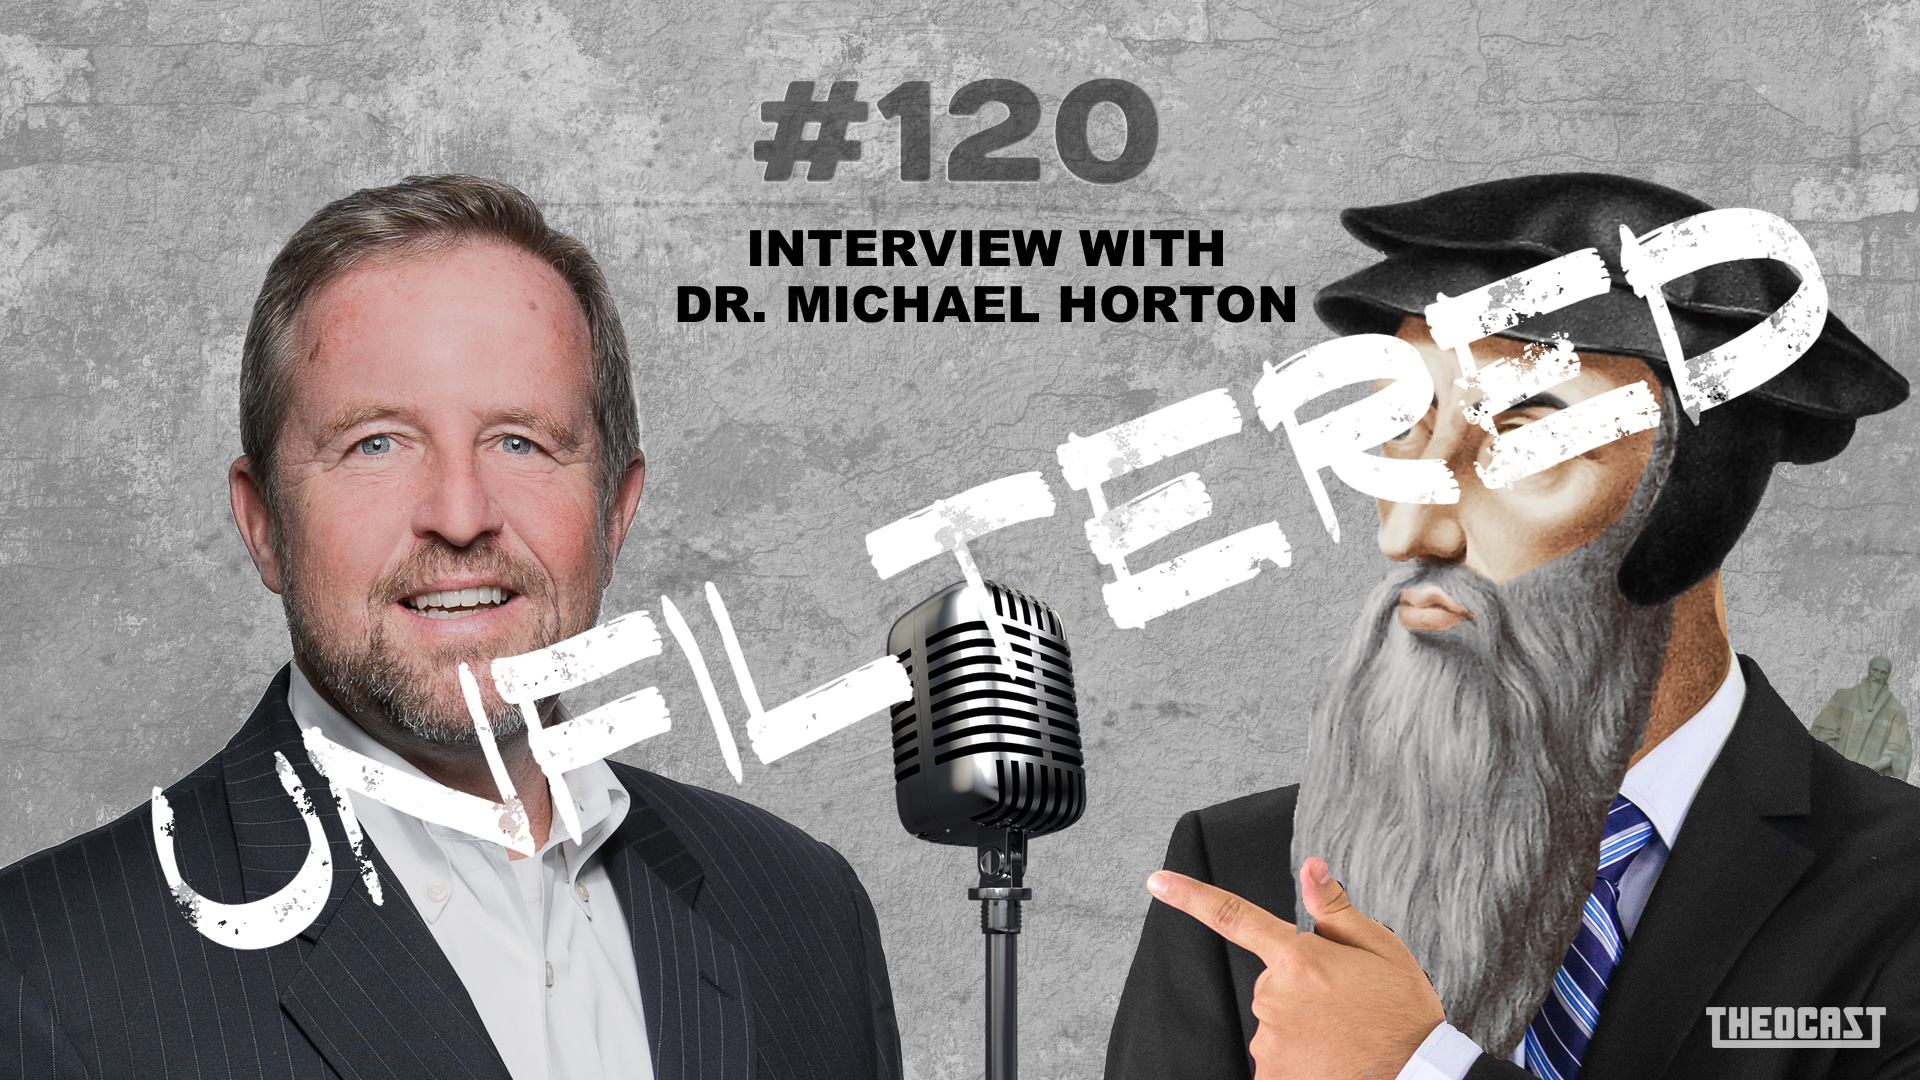 UNFILTERED #120 Interview With Dr. Michael Horton